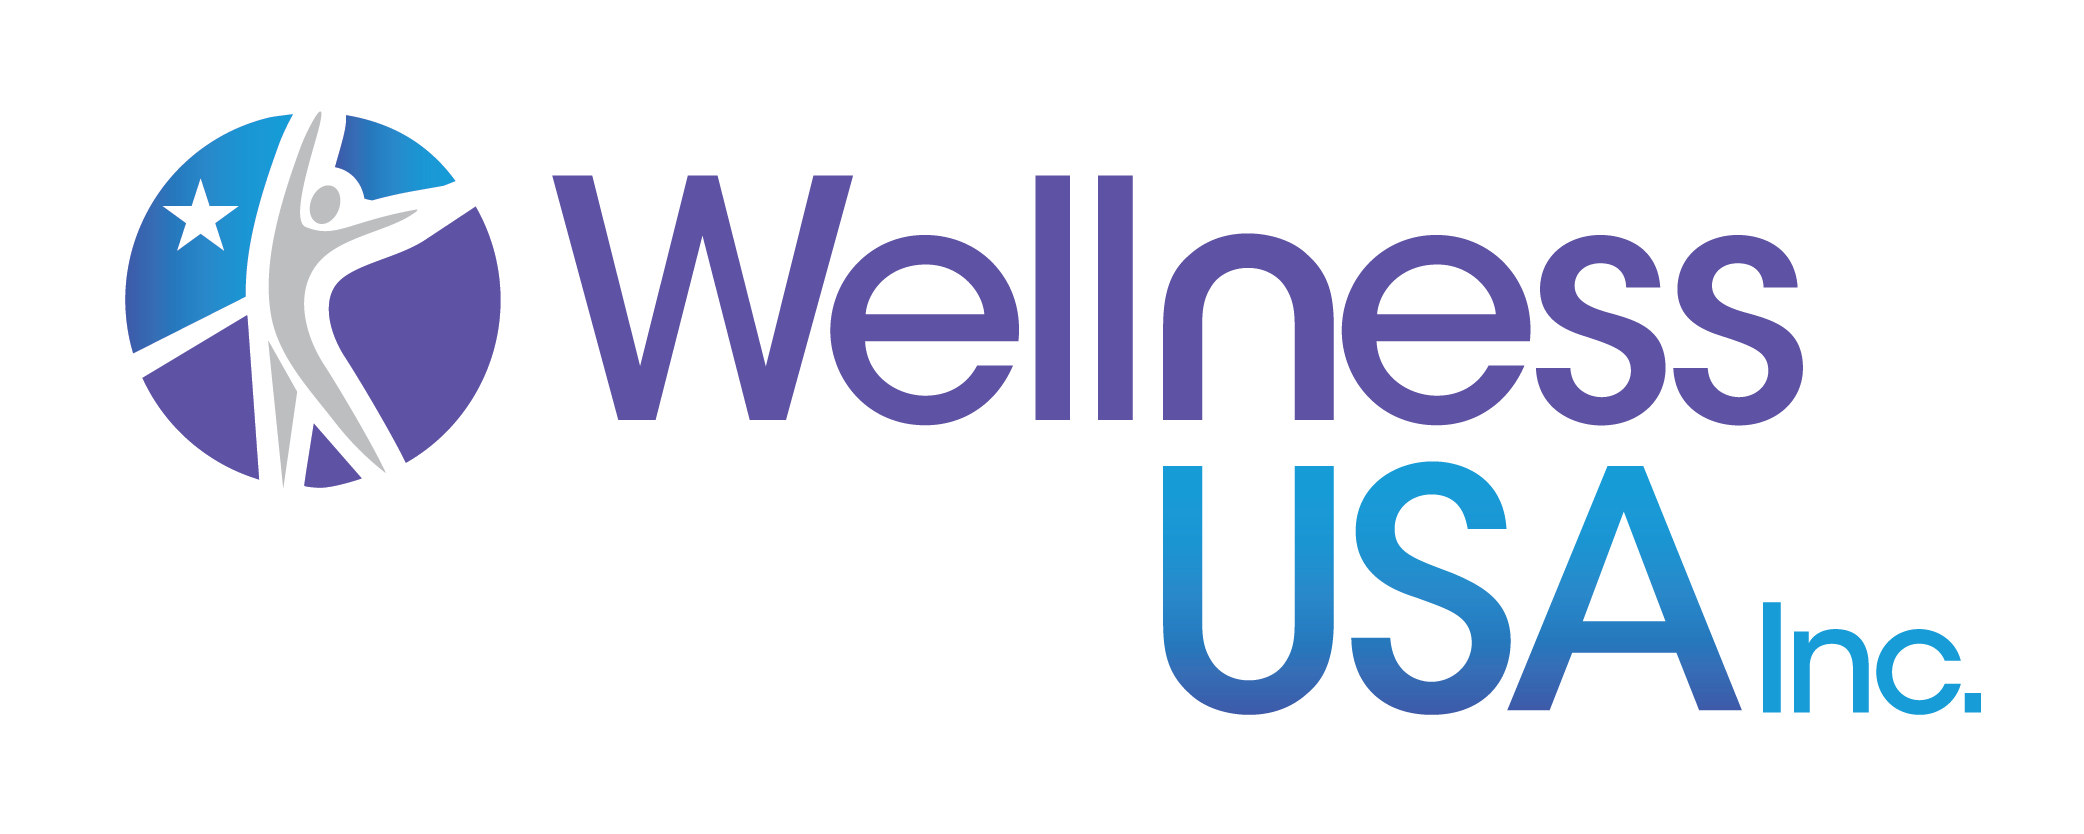 wellnessusa new logo